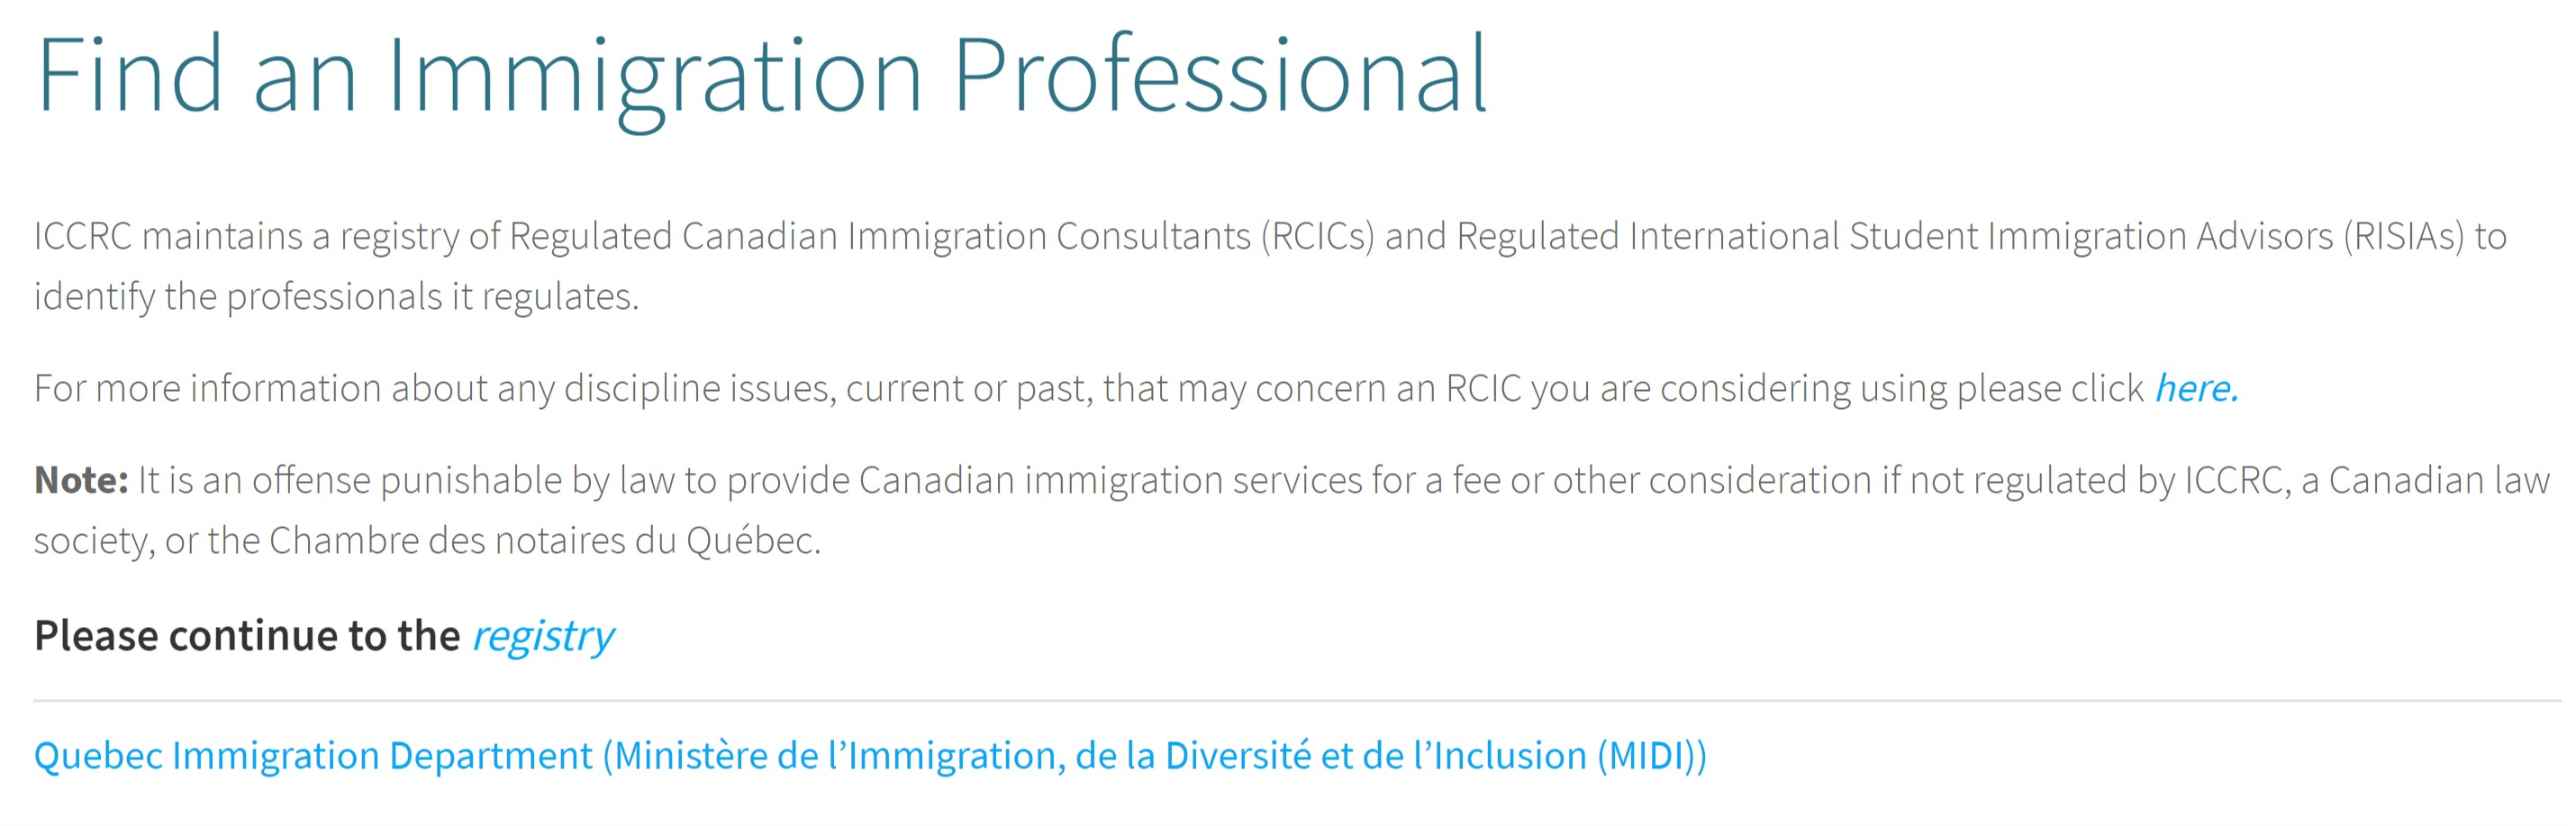 ICCRC MEMBER CHECK PROCESS - Encubate Immigration Services